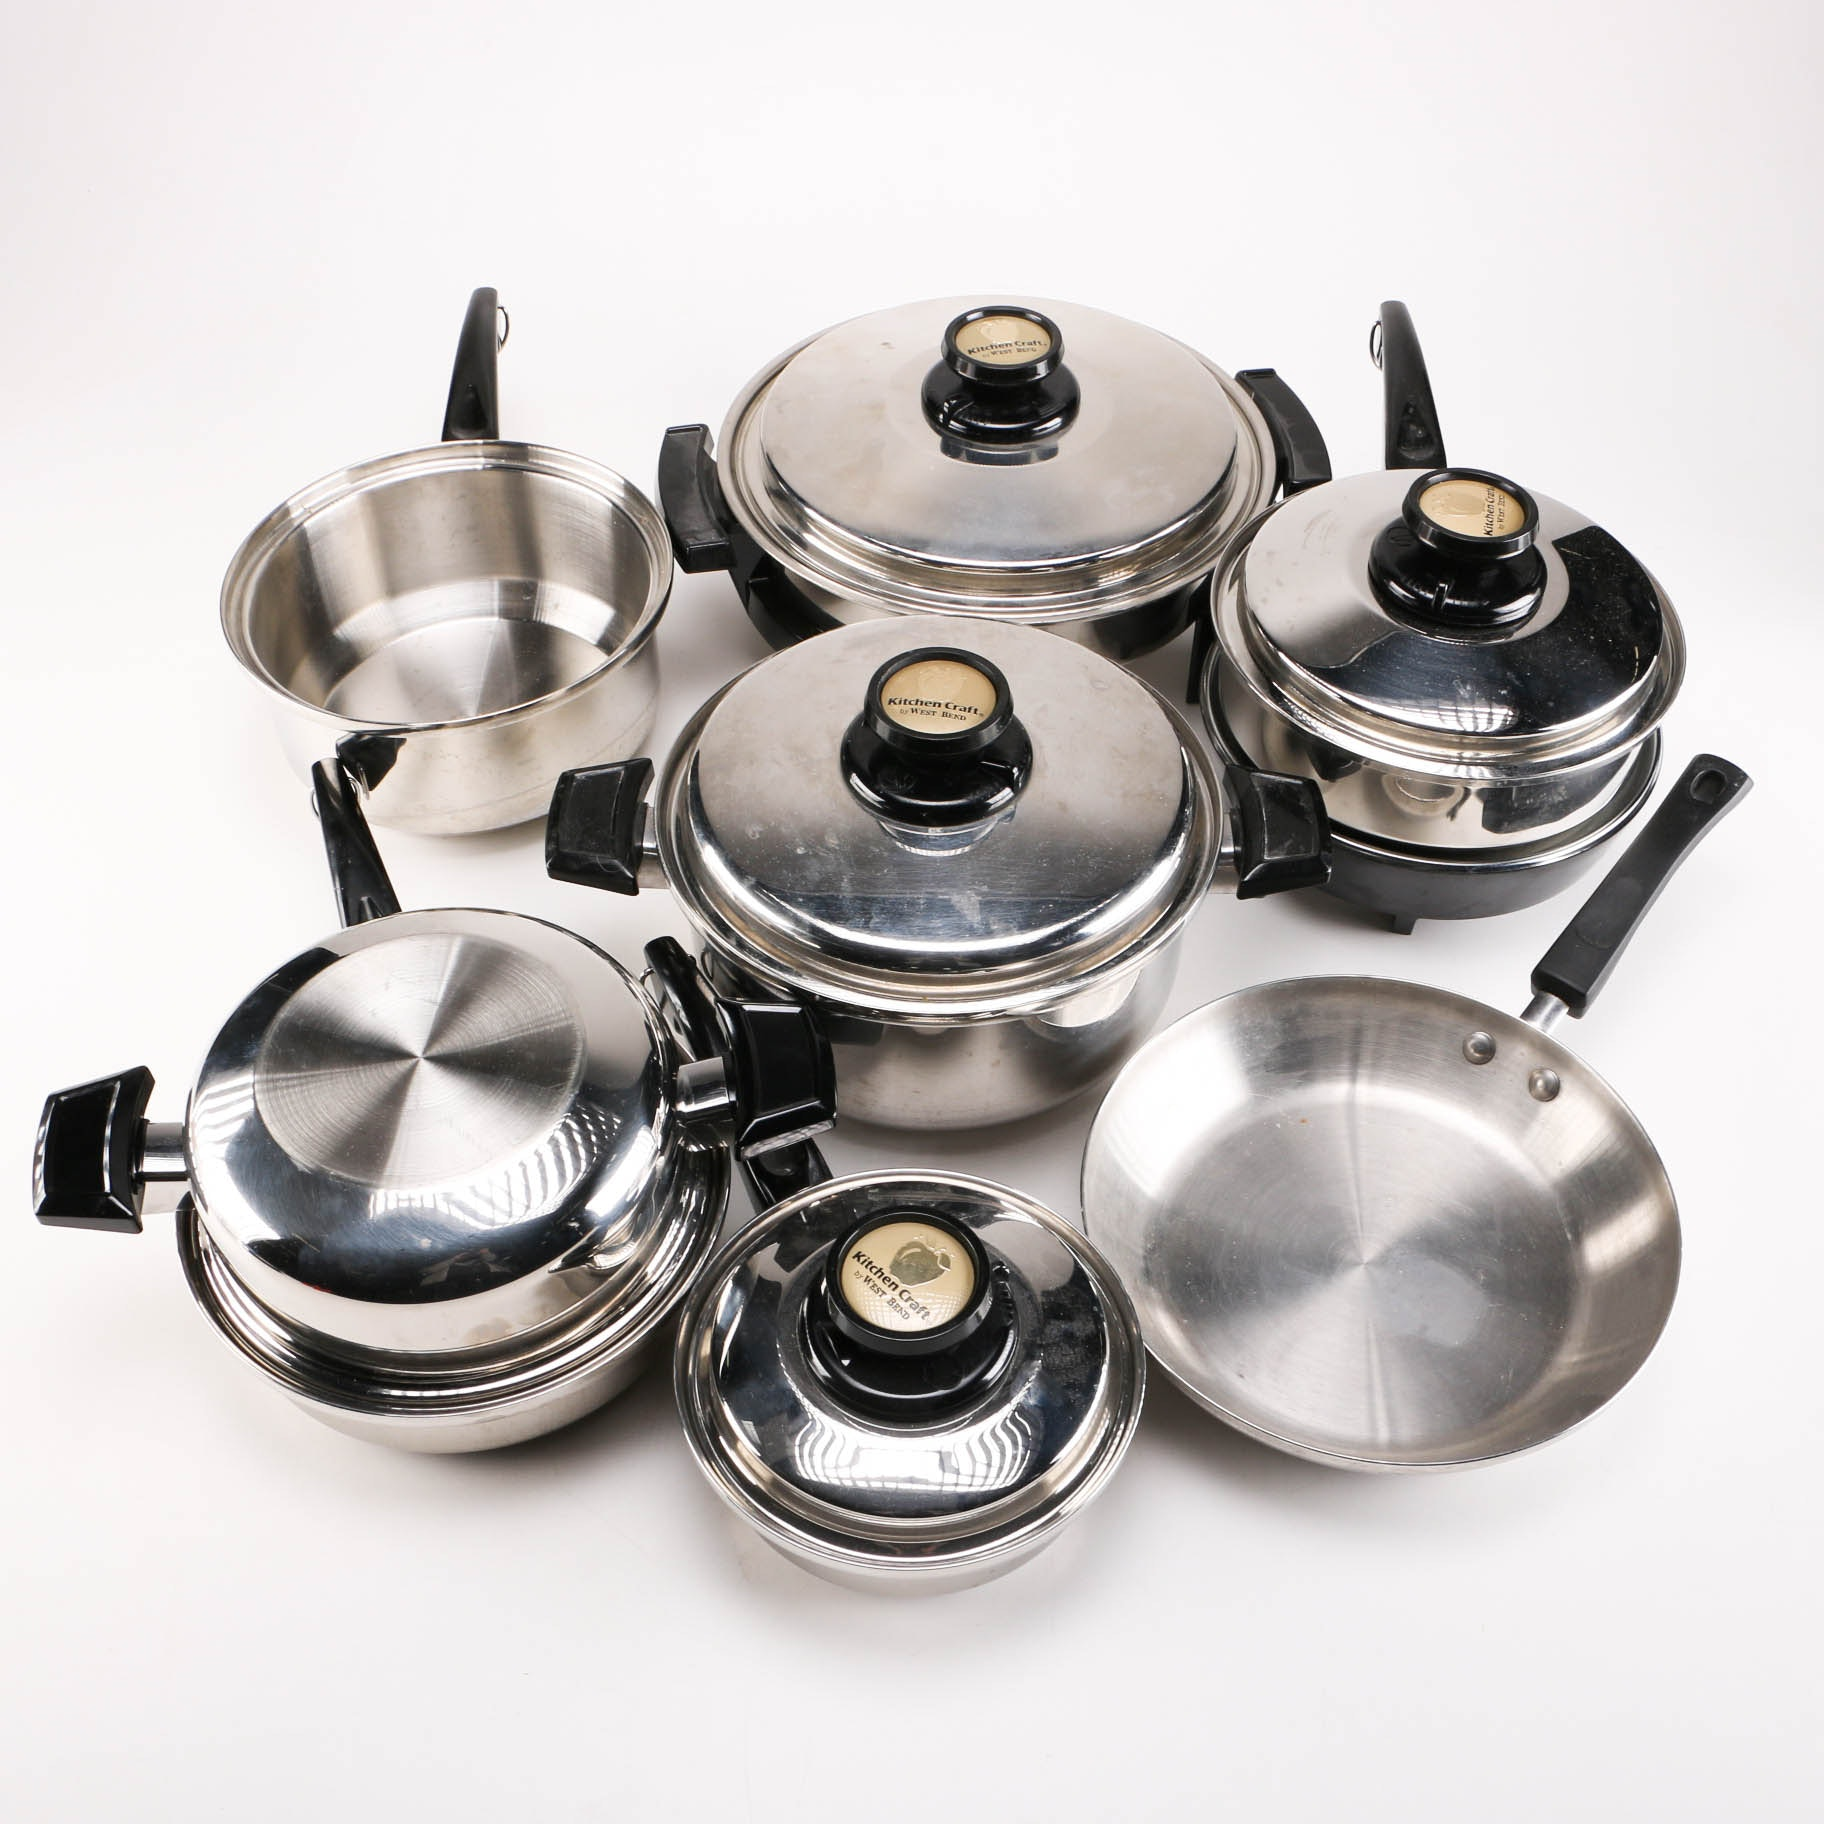 kitchen craft stainless steel cookware 28 images  : IMG7773jpgixlibrb 11 from wallpapersist.com size 781 x 781 jpeg 98kB